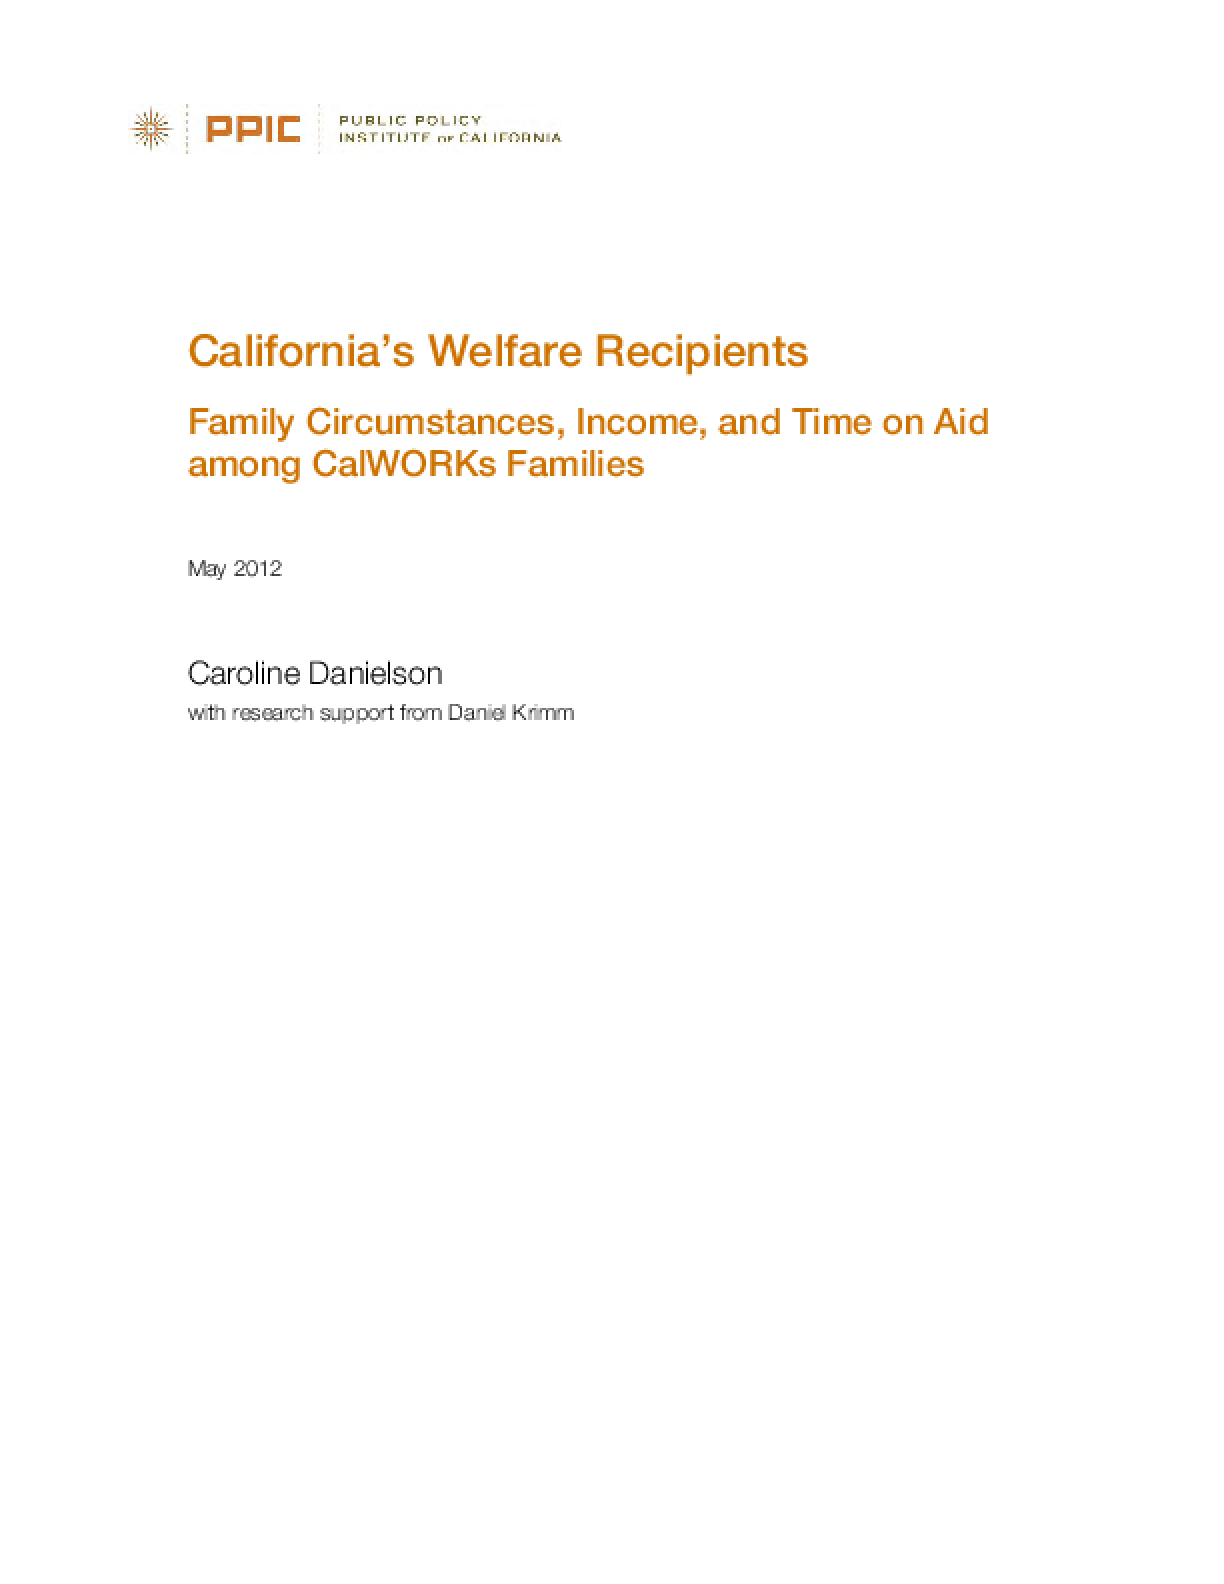 California's Welfare Recipients: Family Circumstances, Income, and Time on Aid Among CalWORKs Families